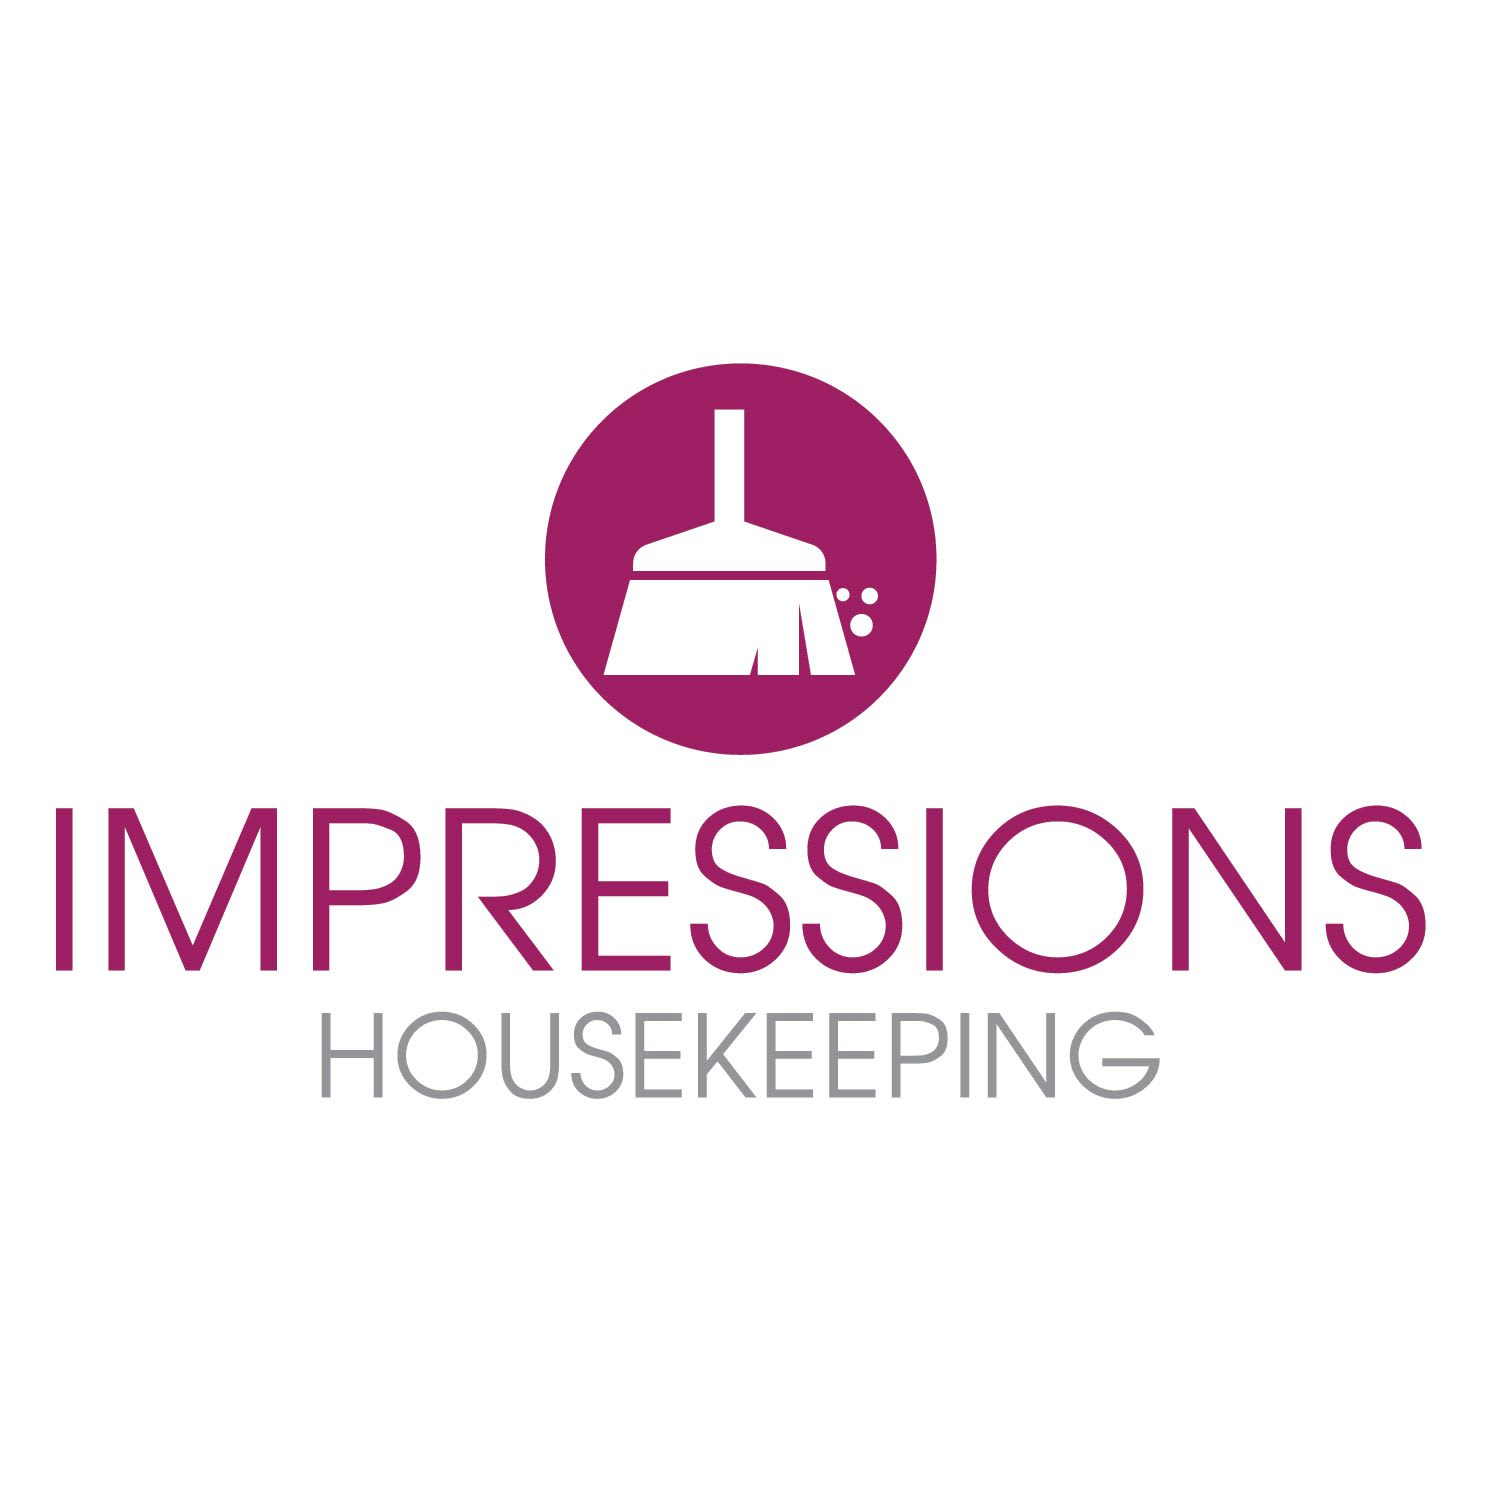 Housekeeping services that leave an impression at Discovery Village At Southlake in Southlake, Texas